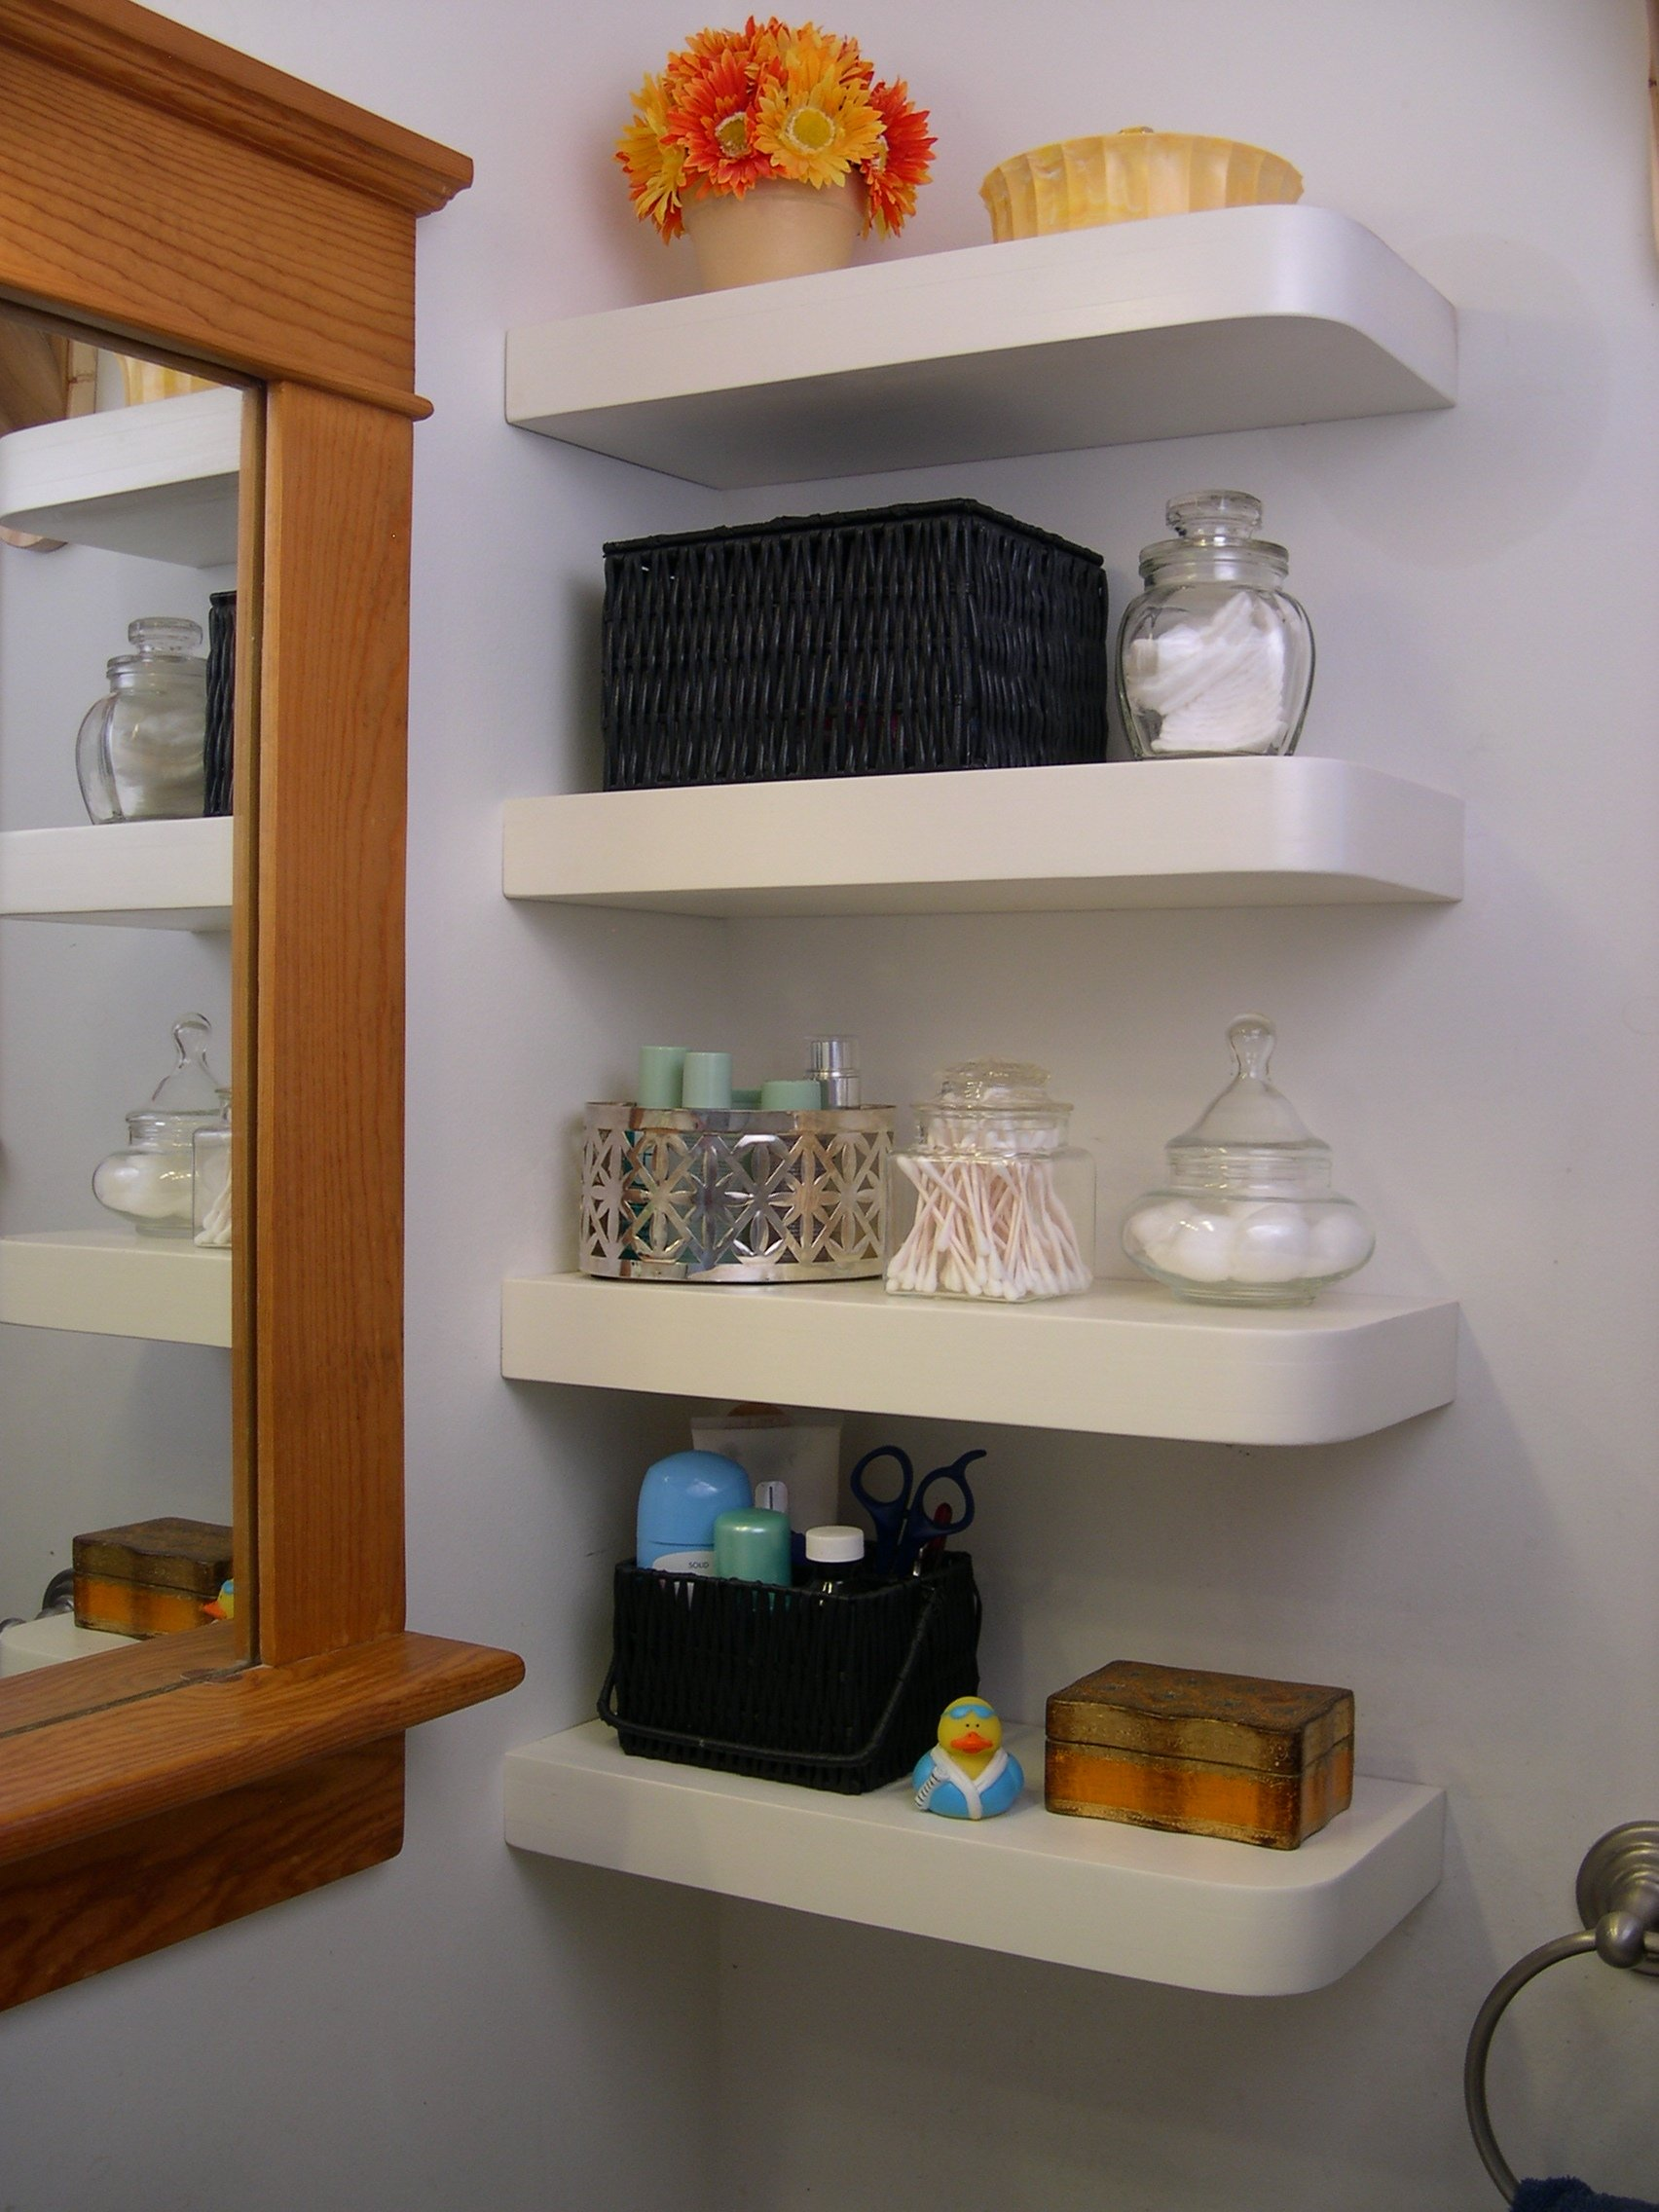 Stunning Design Of The White Silver Corner Floating Shelves Added With Brown Mirror Ideas